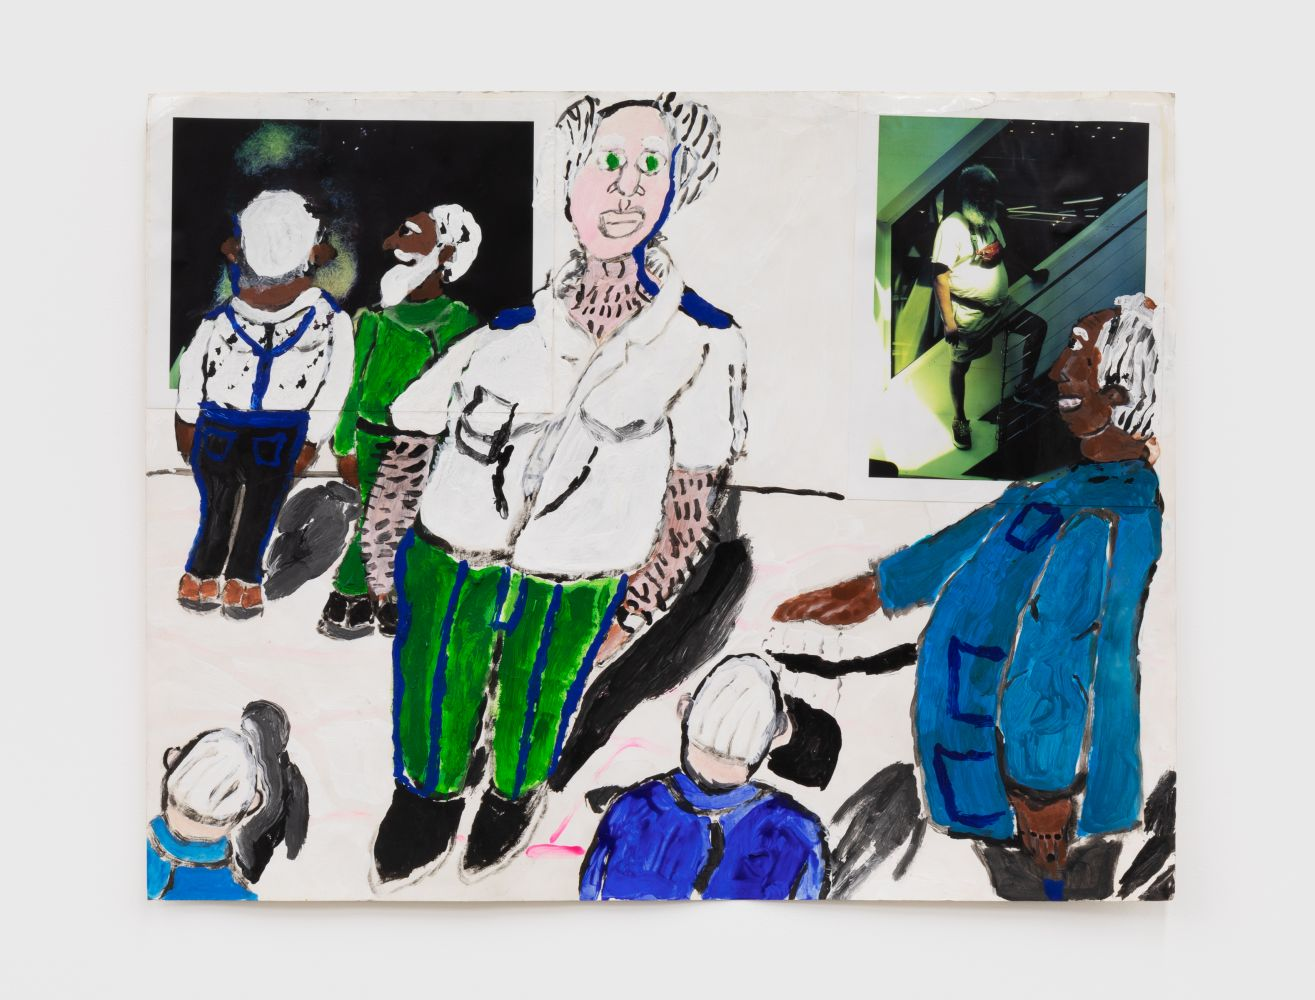 Raynes Birkbeck, Self portrait with Bad Billy, 2020. Mixed Media, 22 x 28 in, 55.9 x 71.1 cm (RBI20.004)